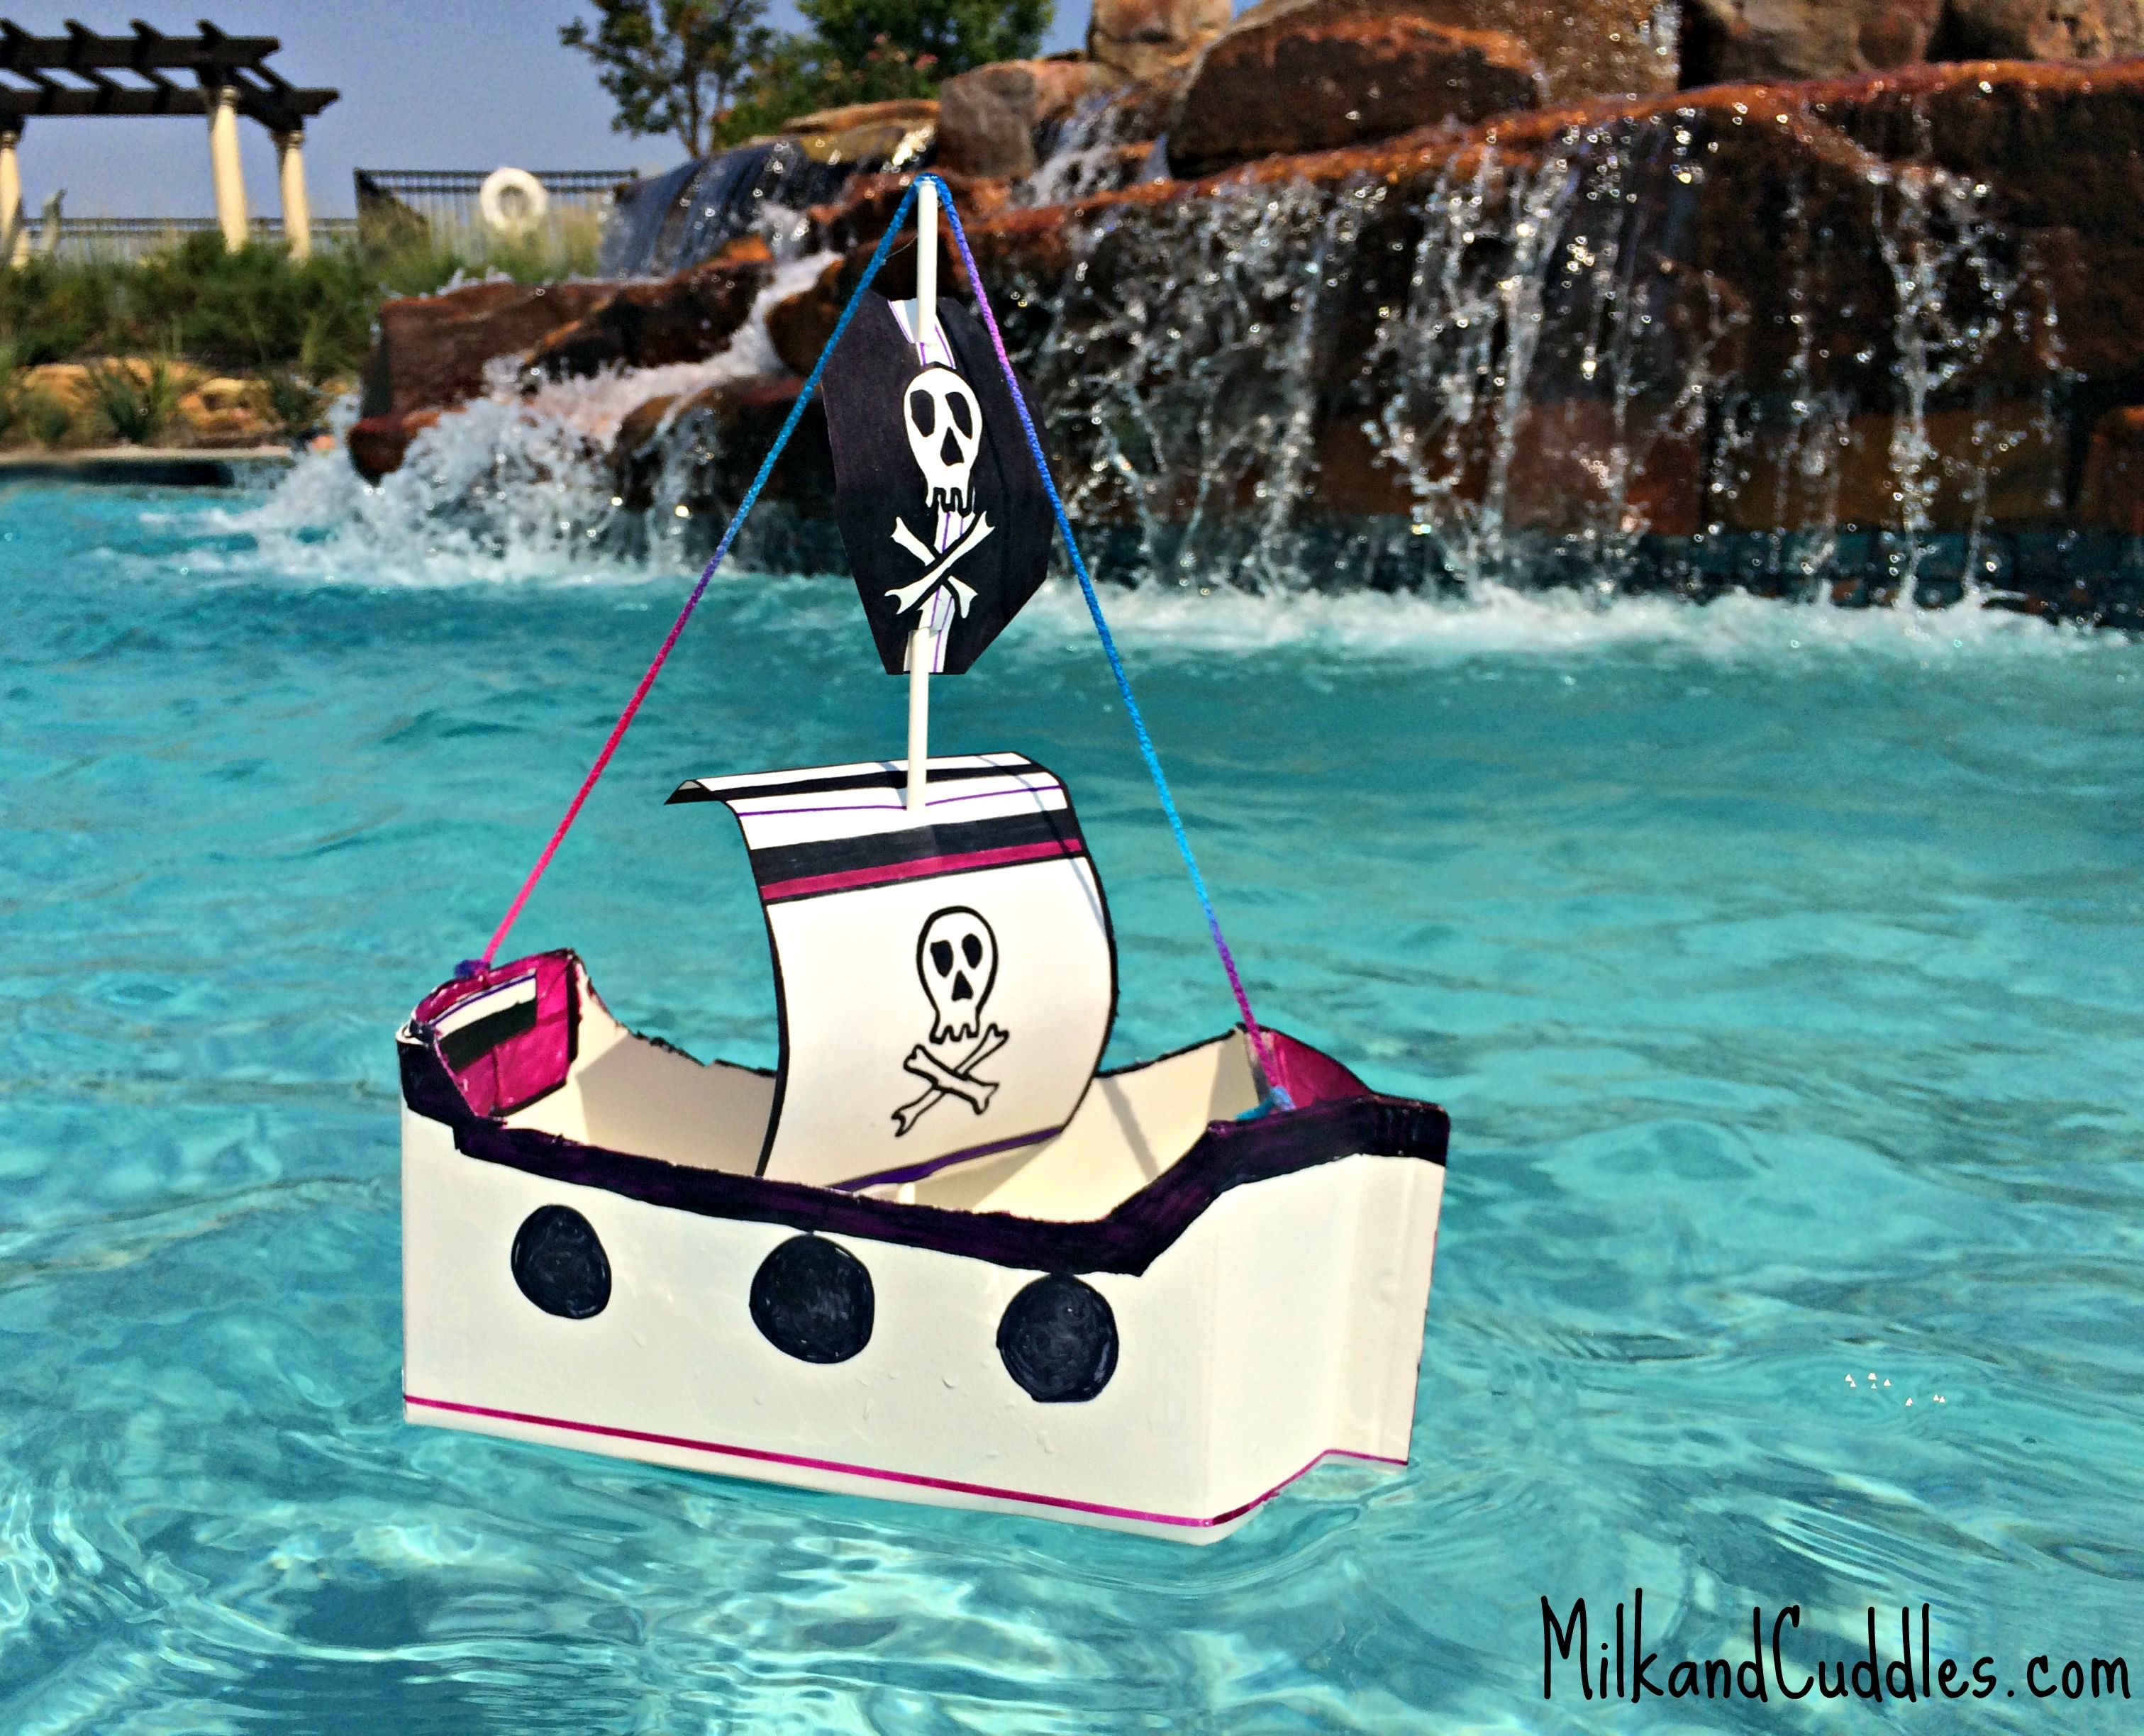 Easy DIY Floating Pirate Ship Craft For Kids Made From Common Recycled Objects